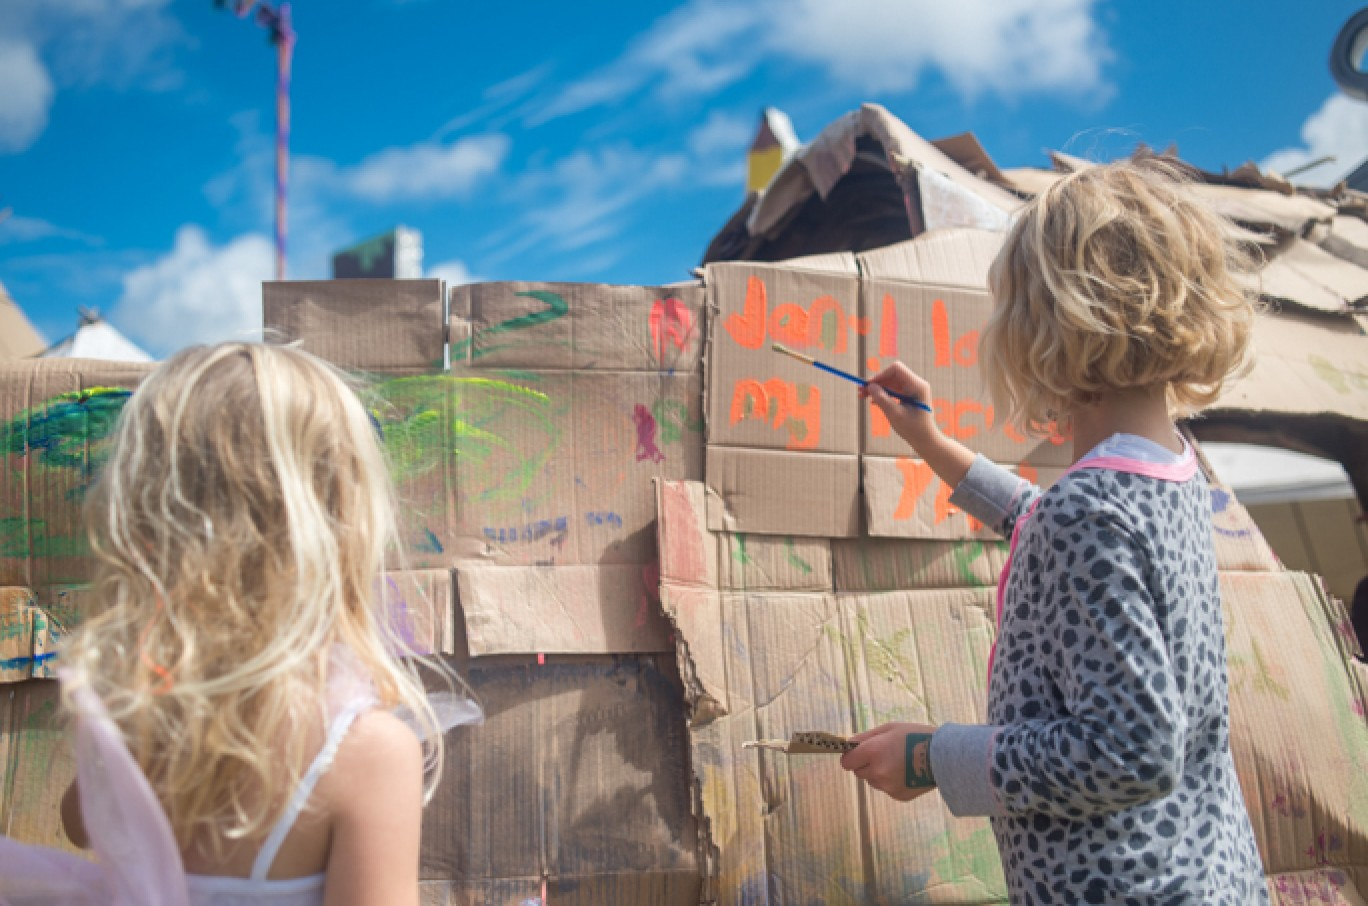 6_121-camp-bestival-2017-kids-field-cl-dsc_26071501585095